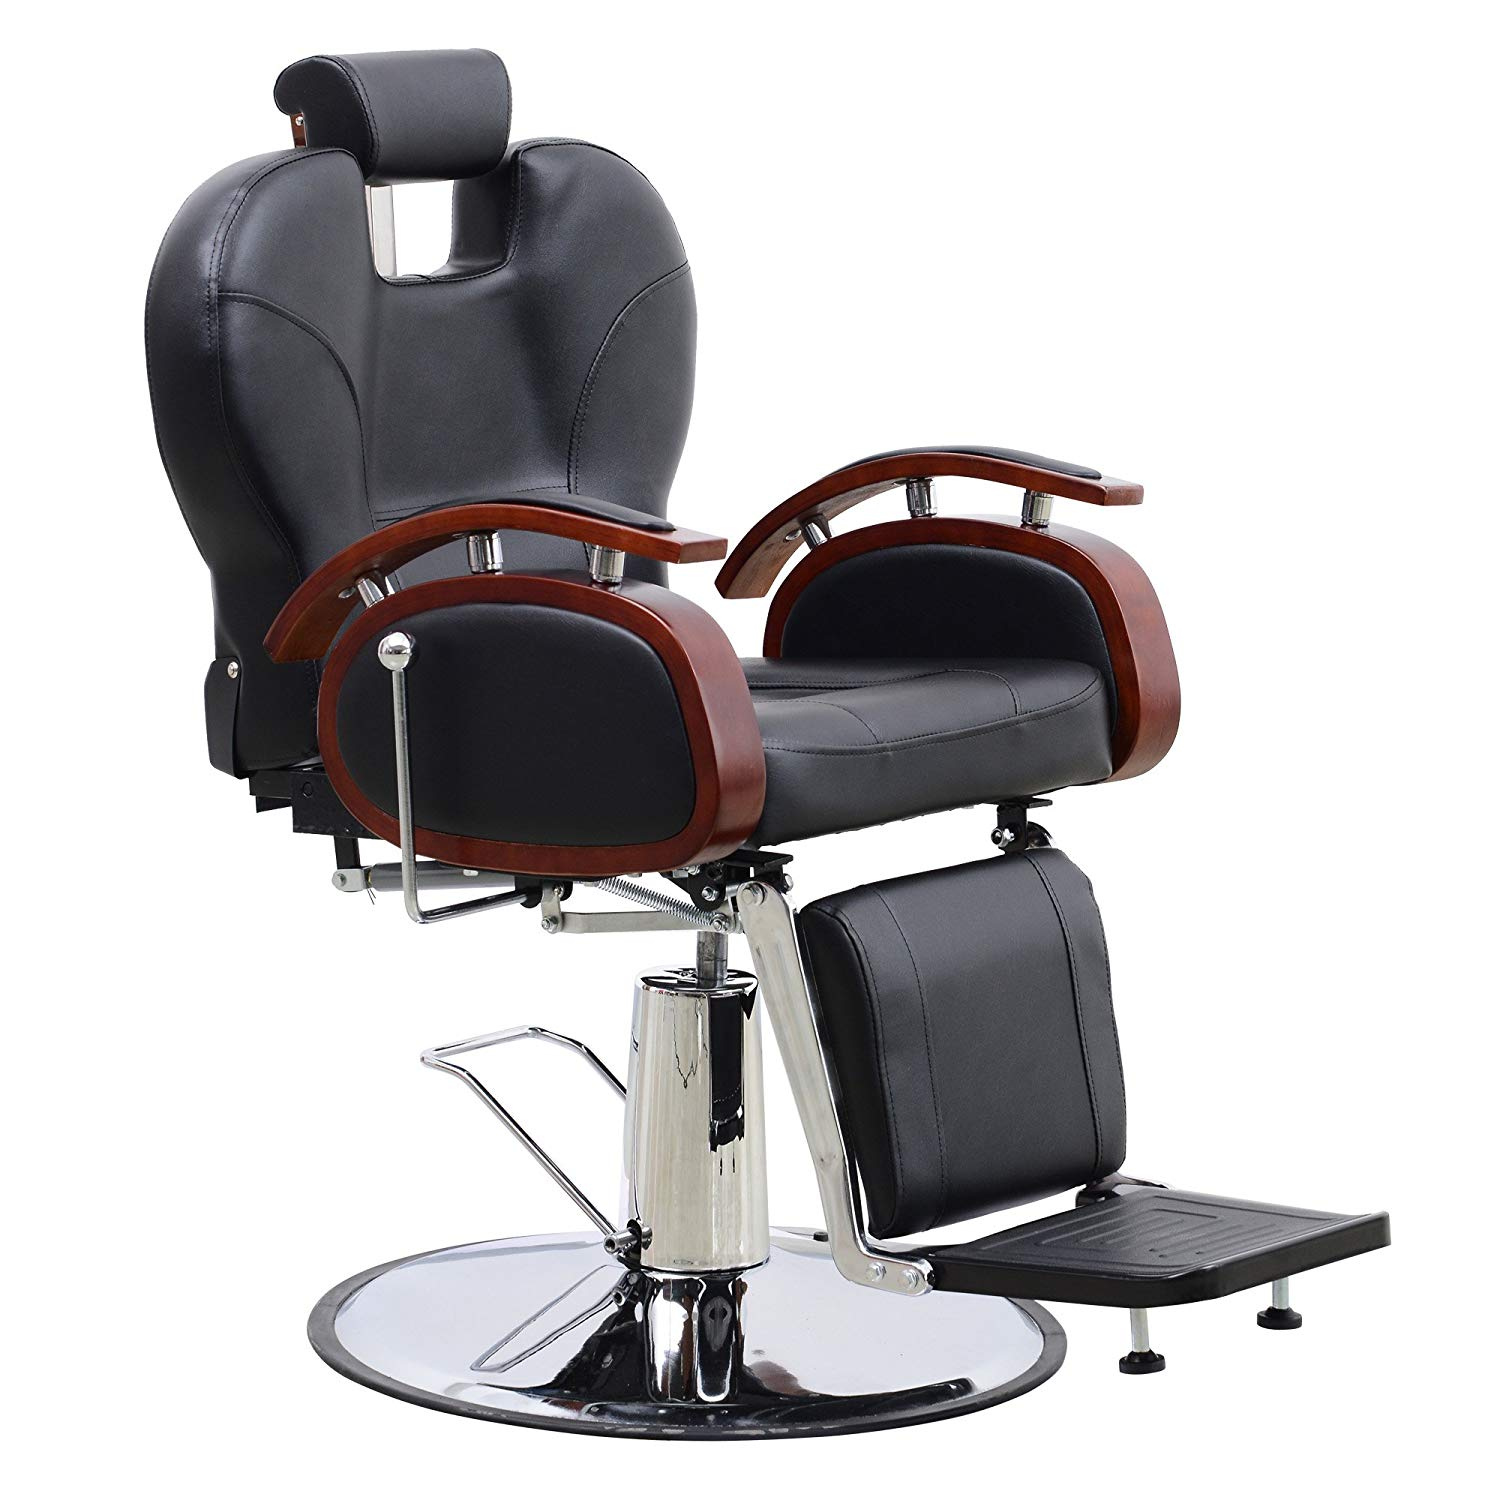 BarberPub All Purpose Hydraulic Barber Chair, 6154-8705